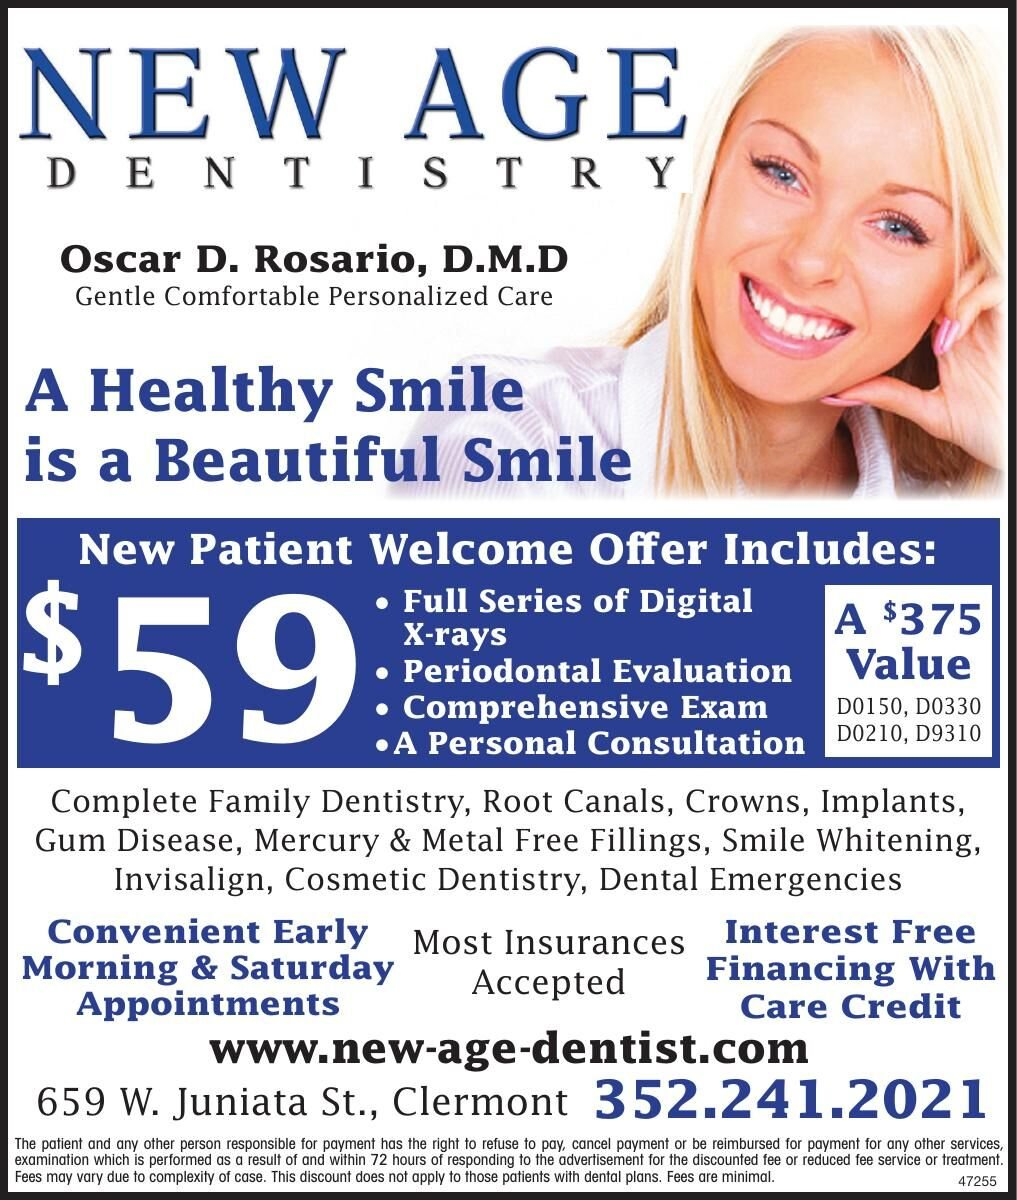 New Age Dentistry